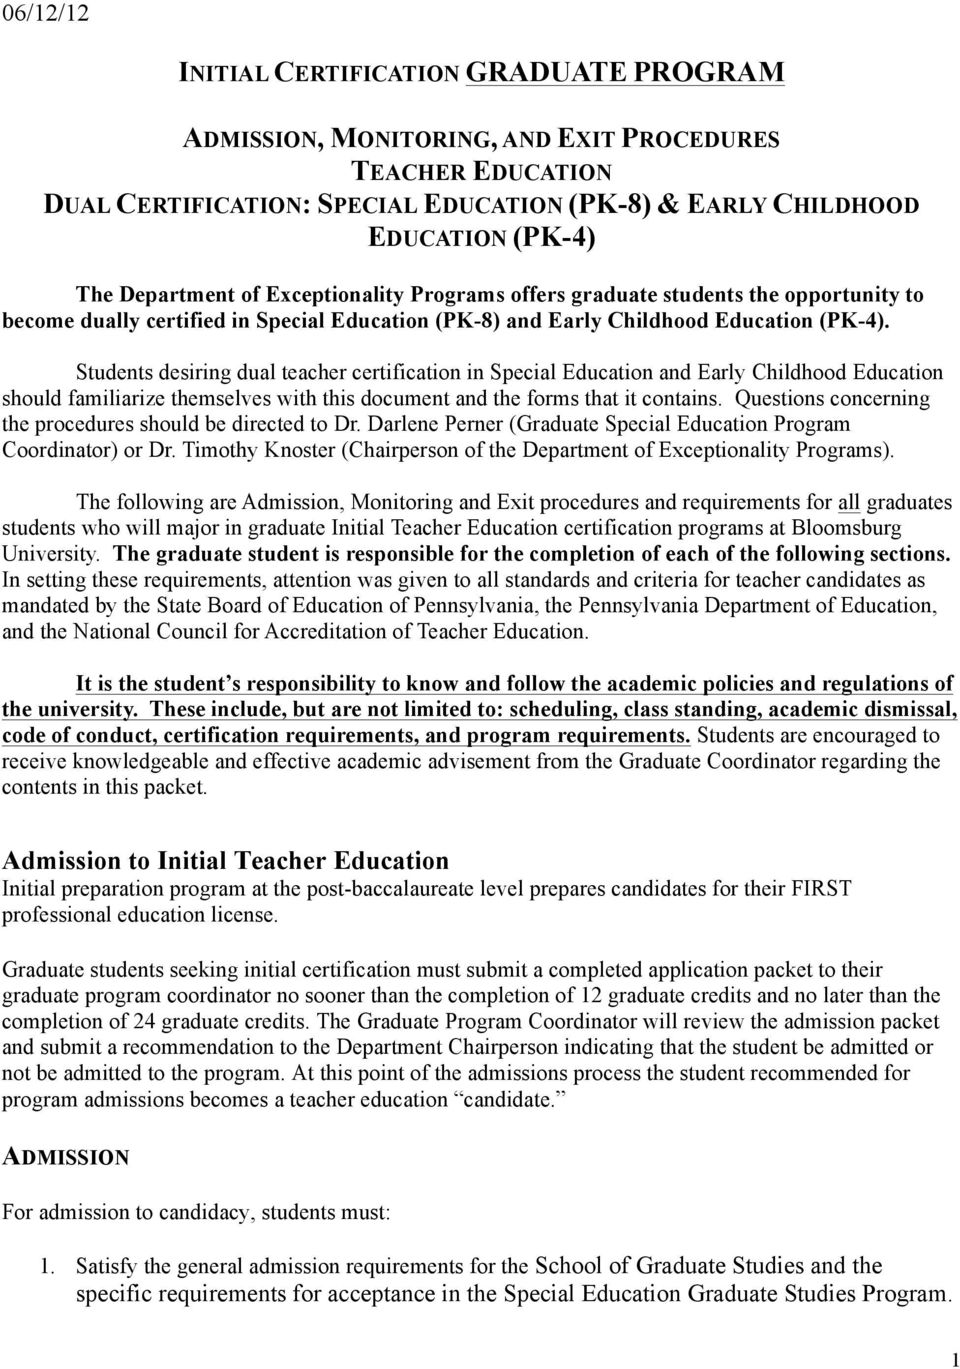 Students desiring dual teacher certification in Special Education and Early Childhood Education should familiarize themselves with this document and the forms that it contains.